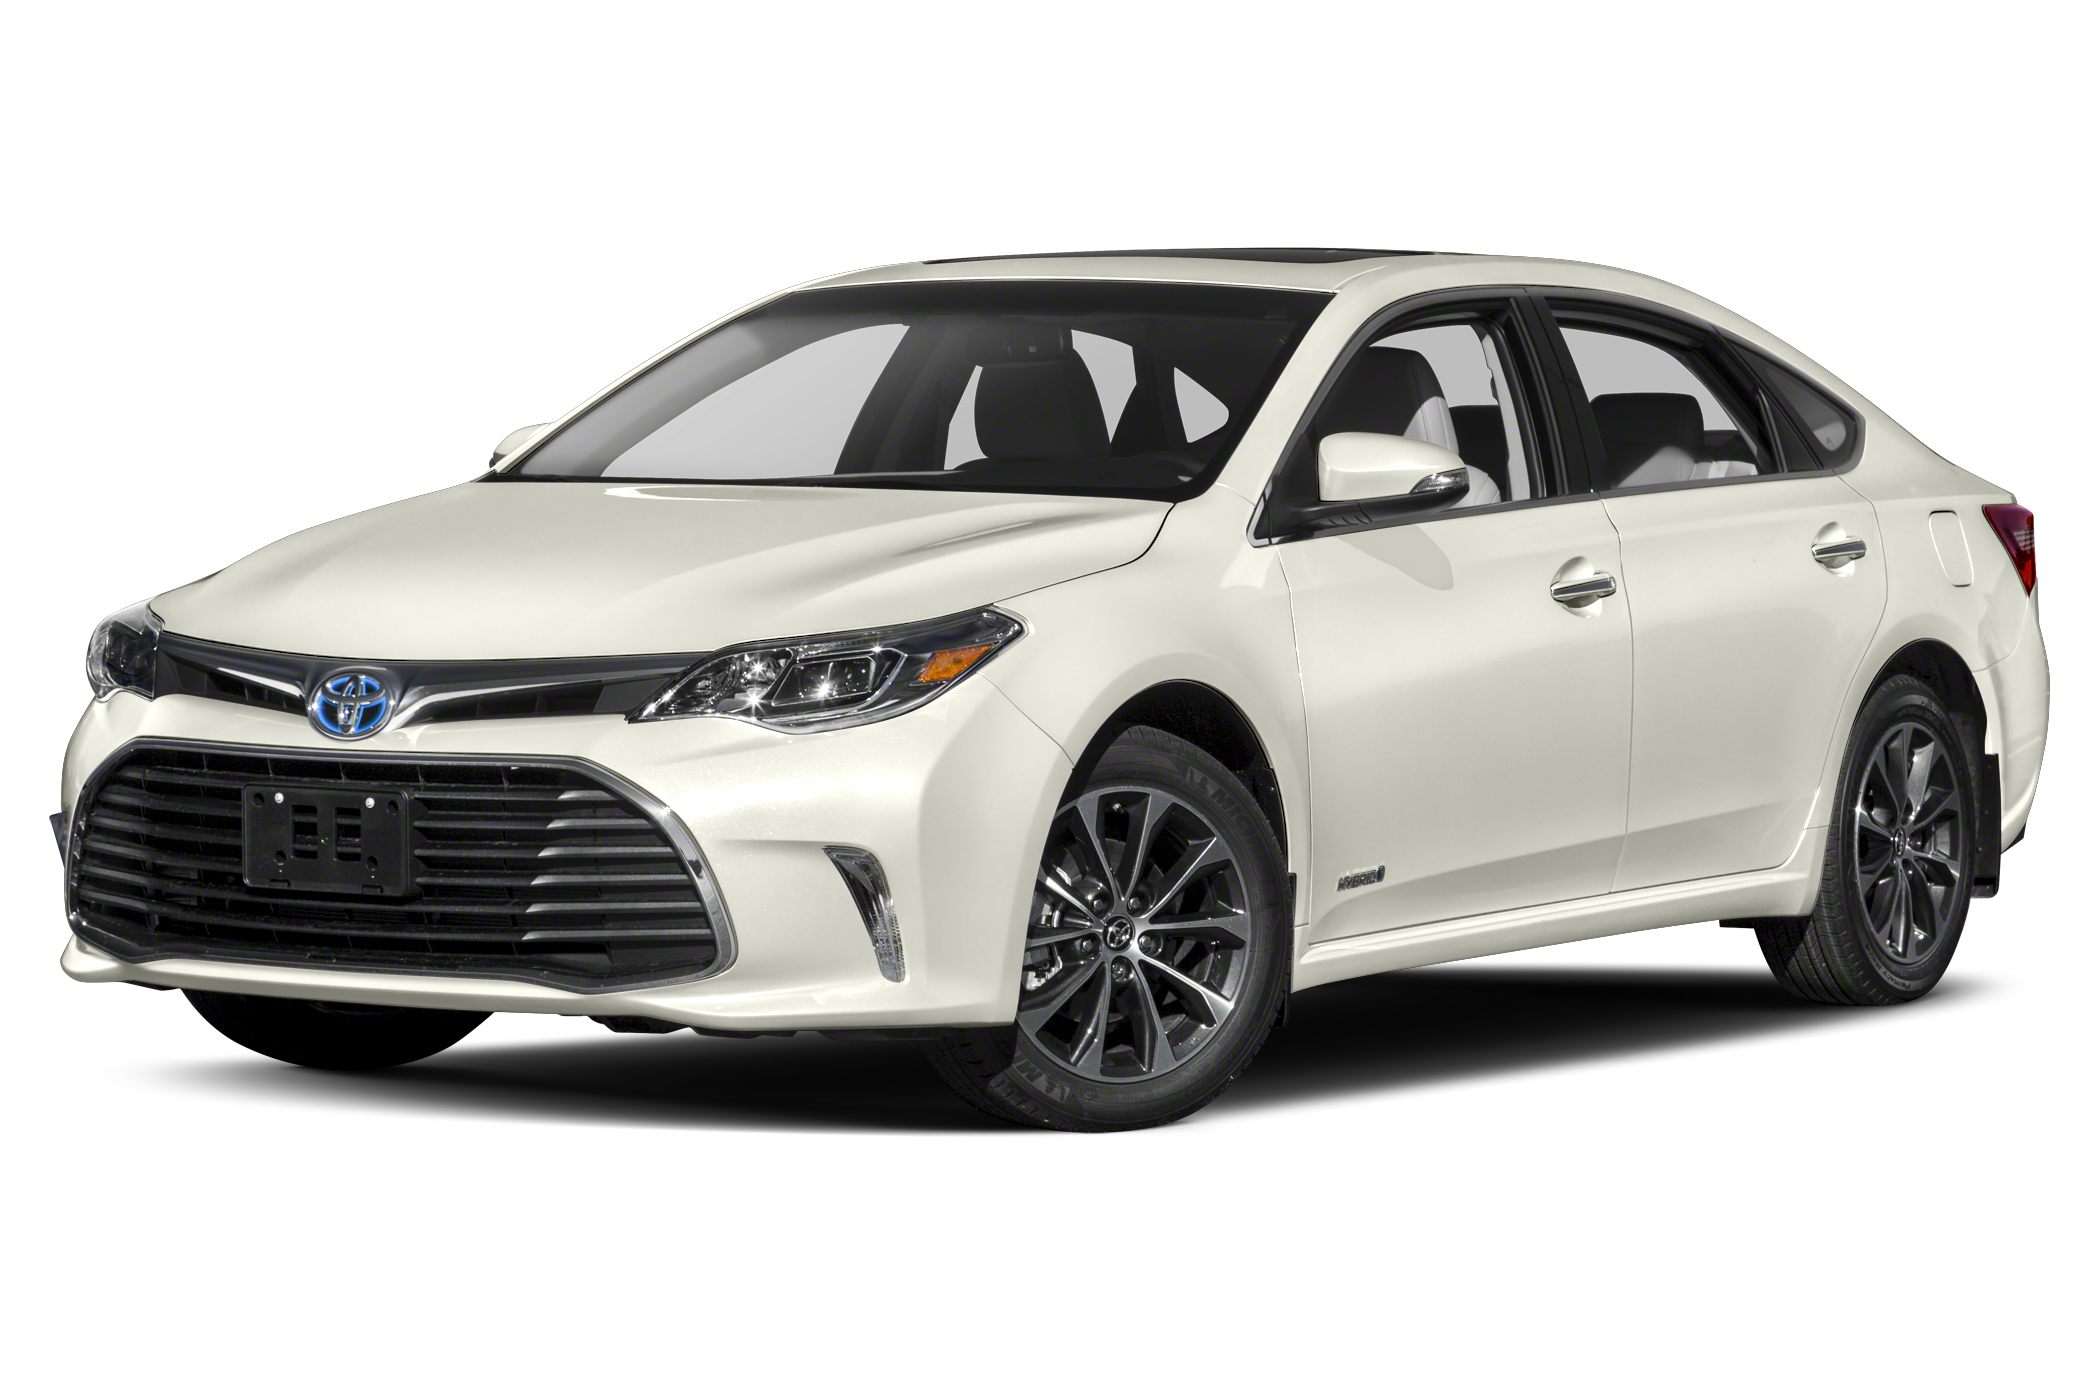 2017 Toyota Avalon Hybrid Photos